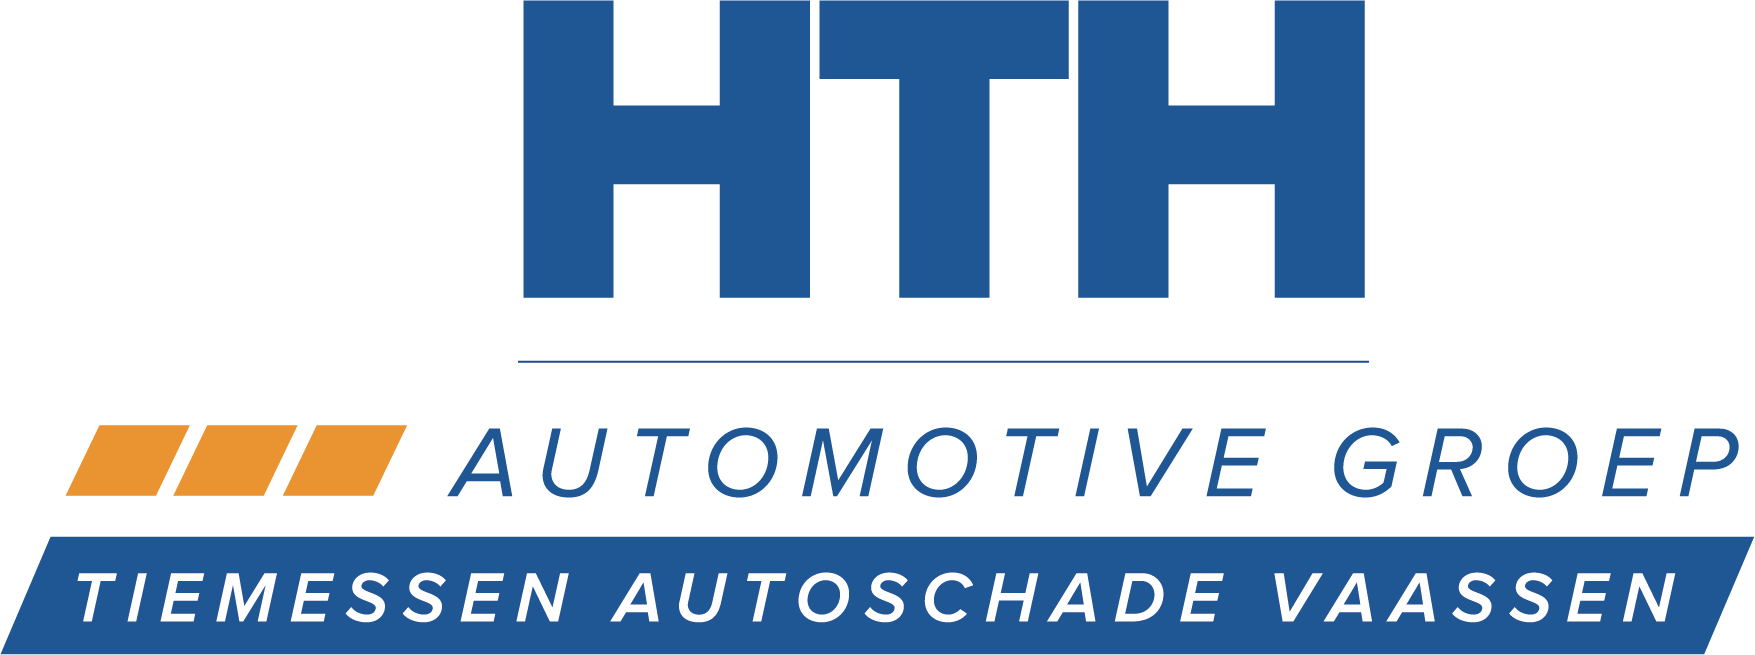 HTH AutomotiveGroup Tiemessen Autoschade Vaassen.